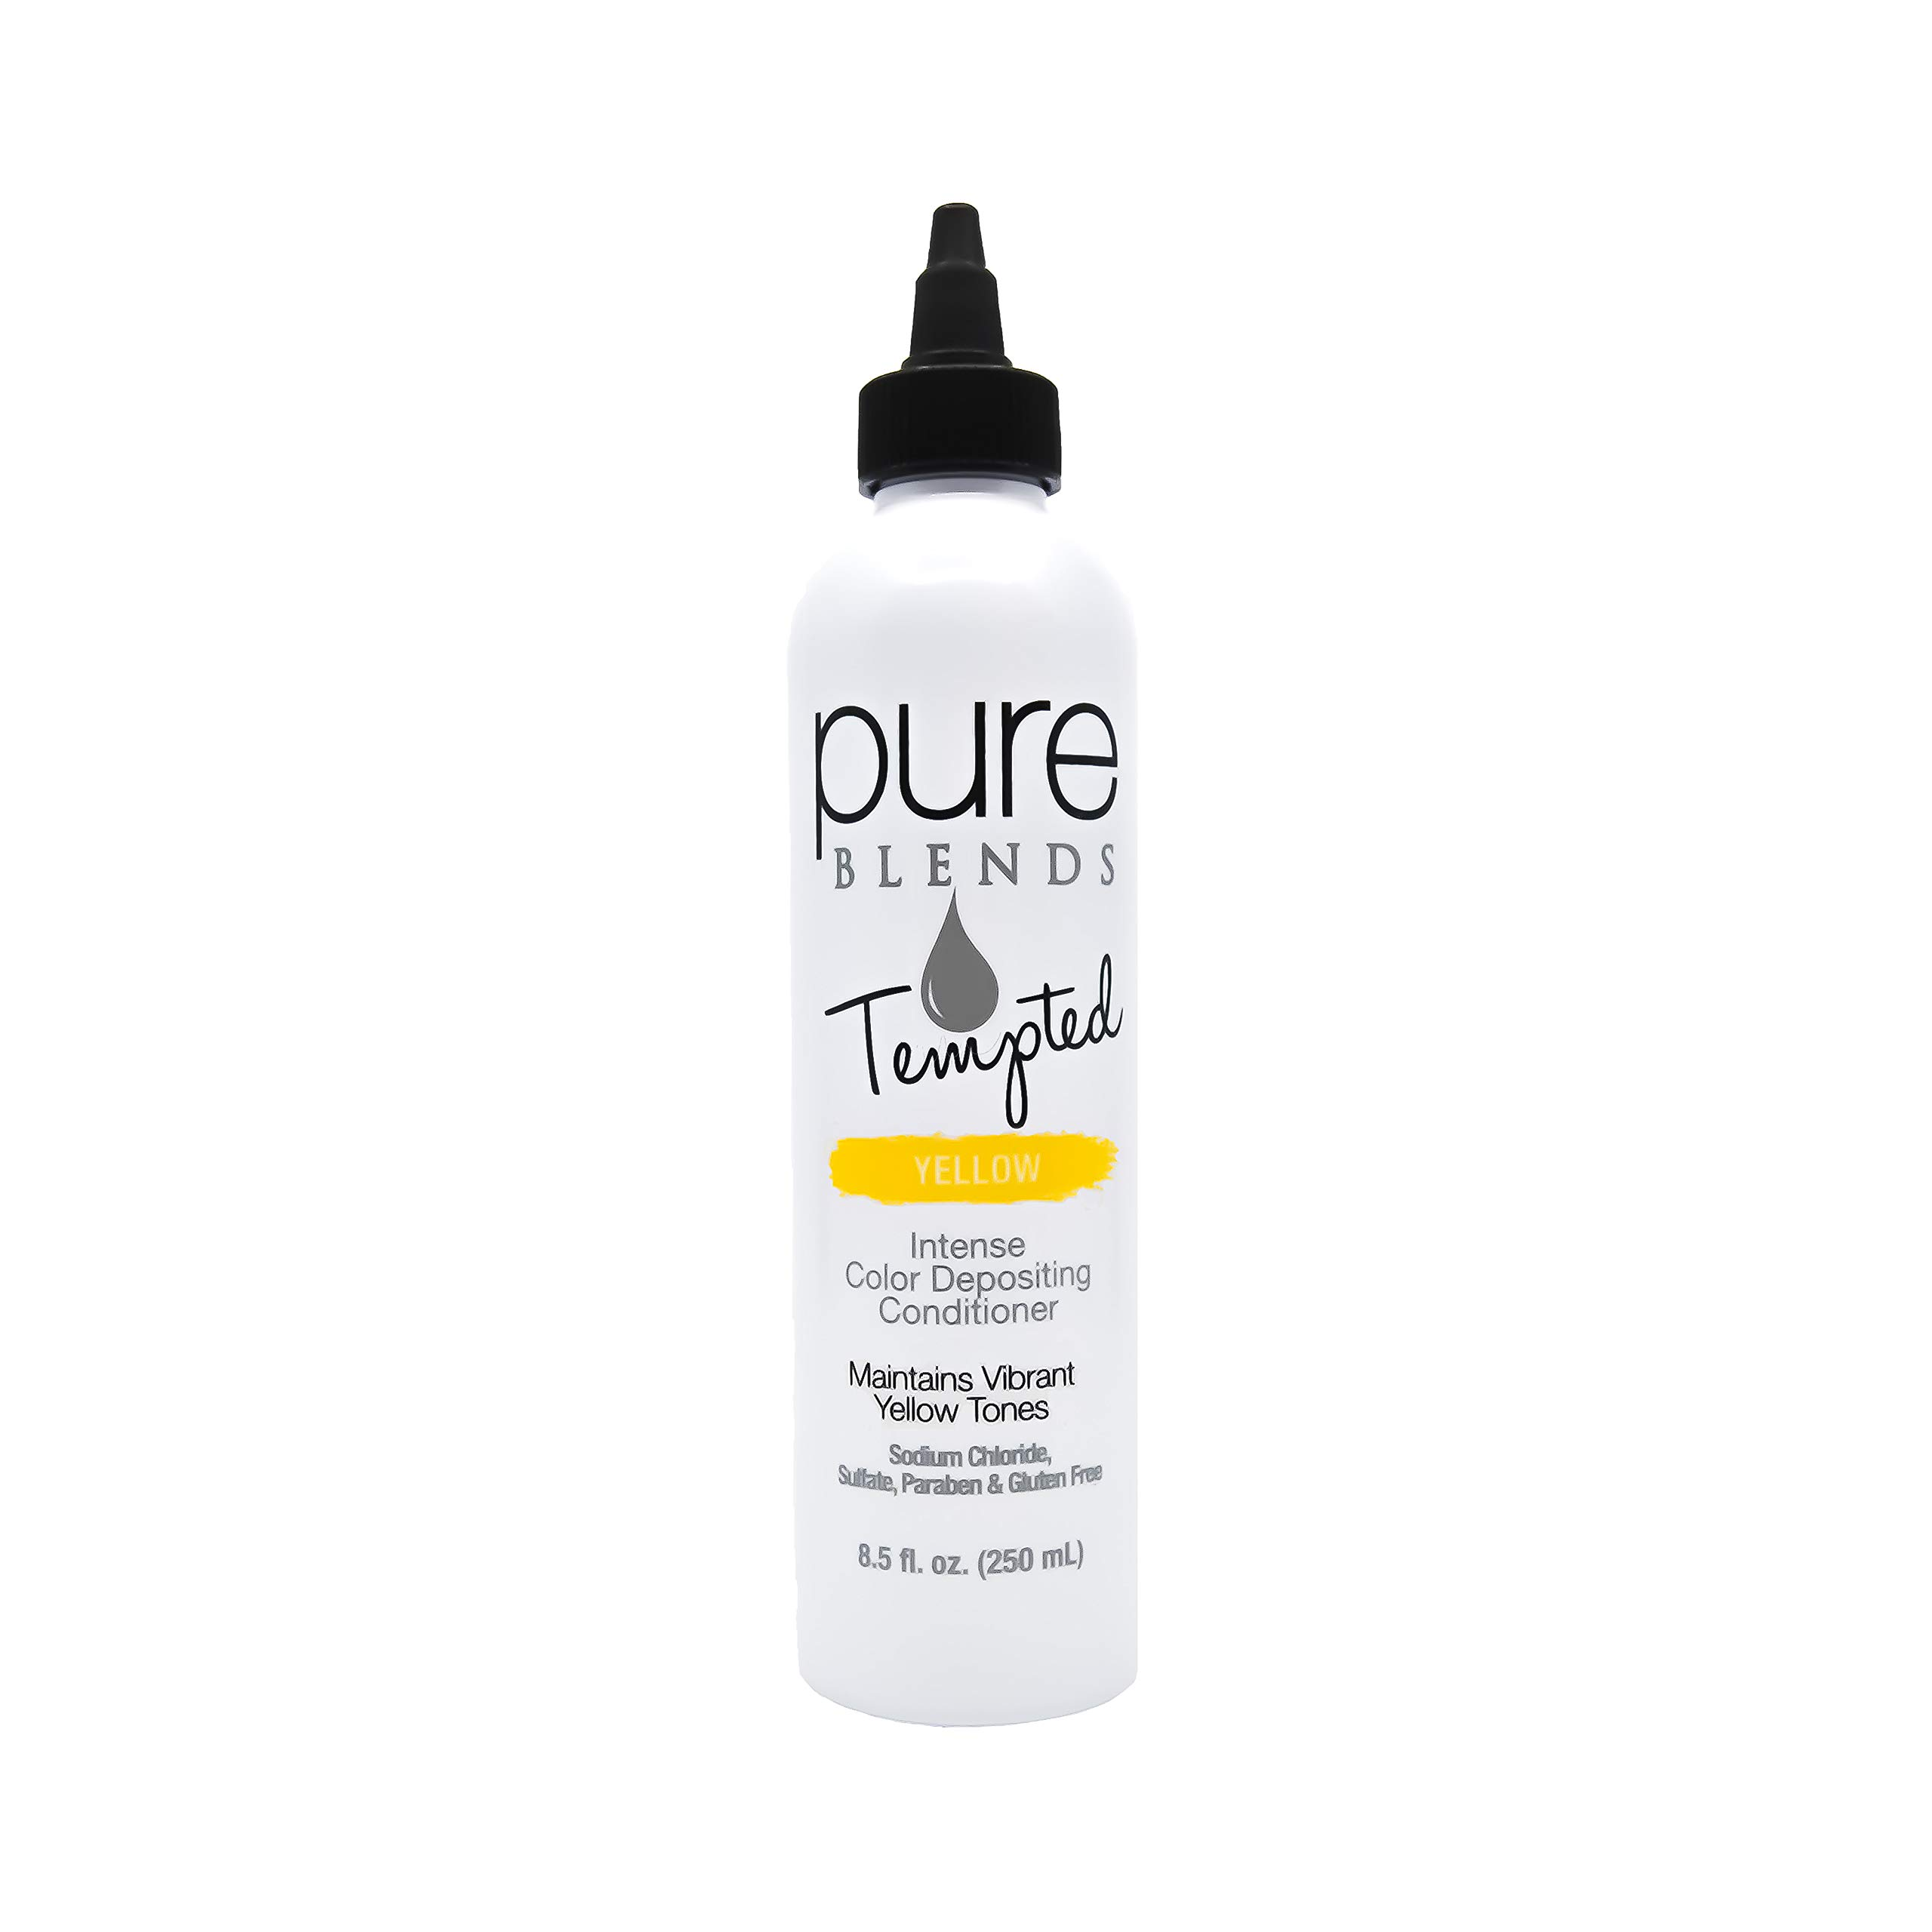 Pure Blends Tempted Intense Color Depositing Conditioner - Yellow (Vibrant Yellow Tones) 8.5 Ounce - Salon Quality by Pure Blends